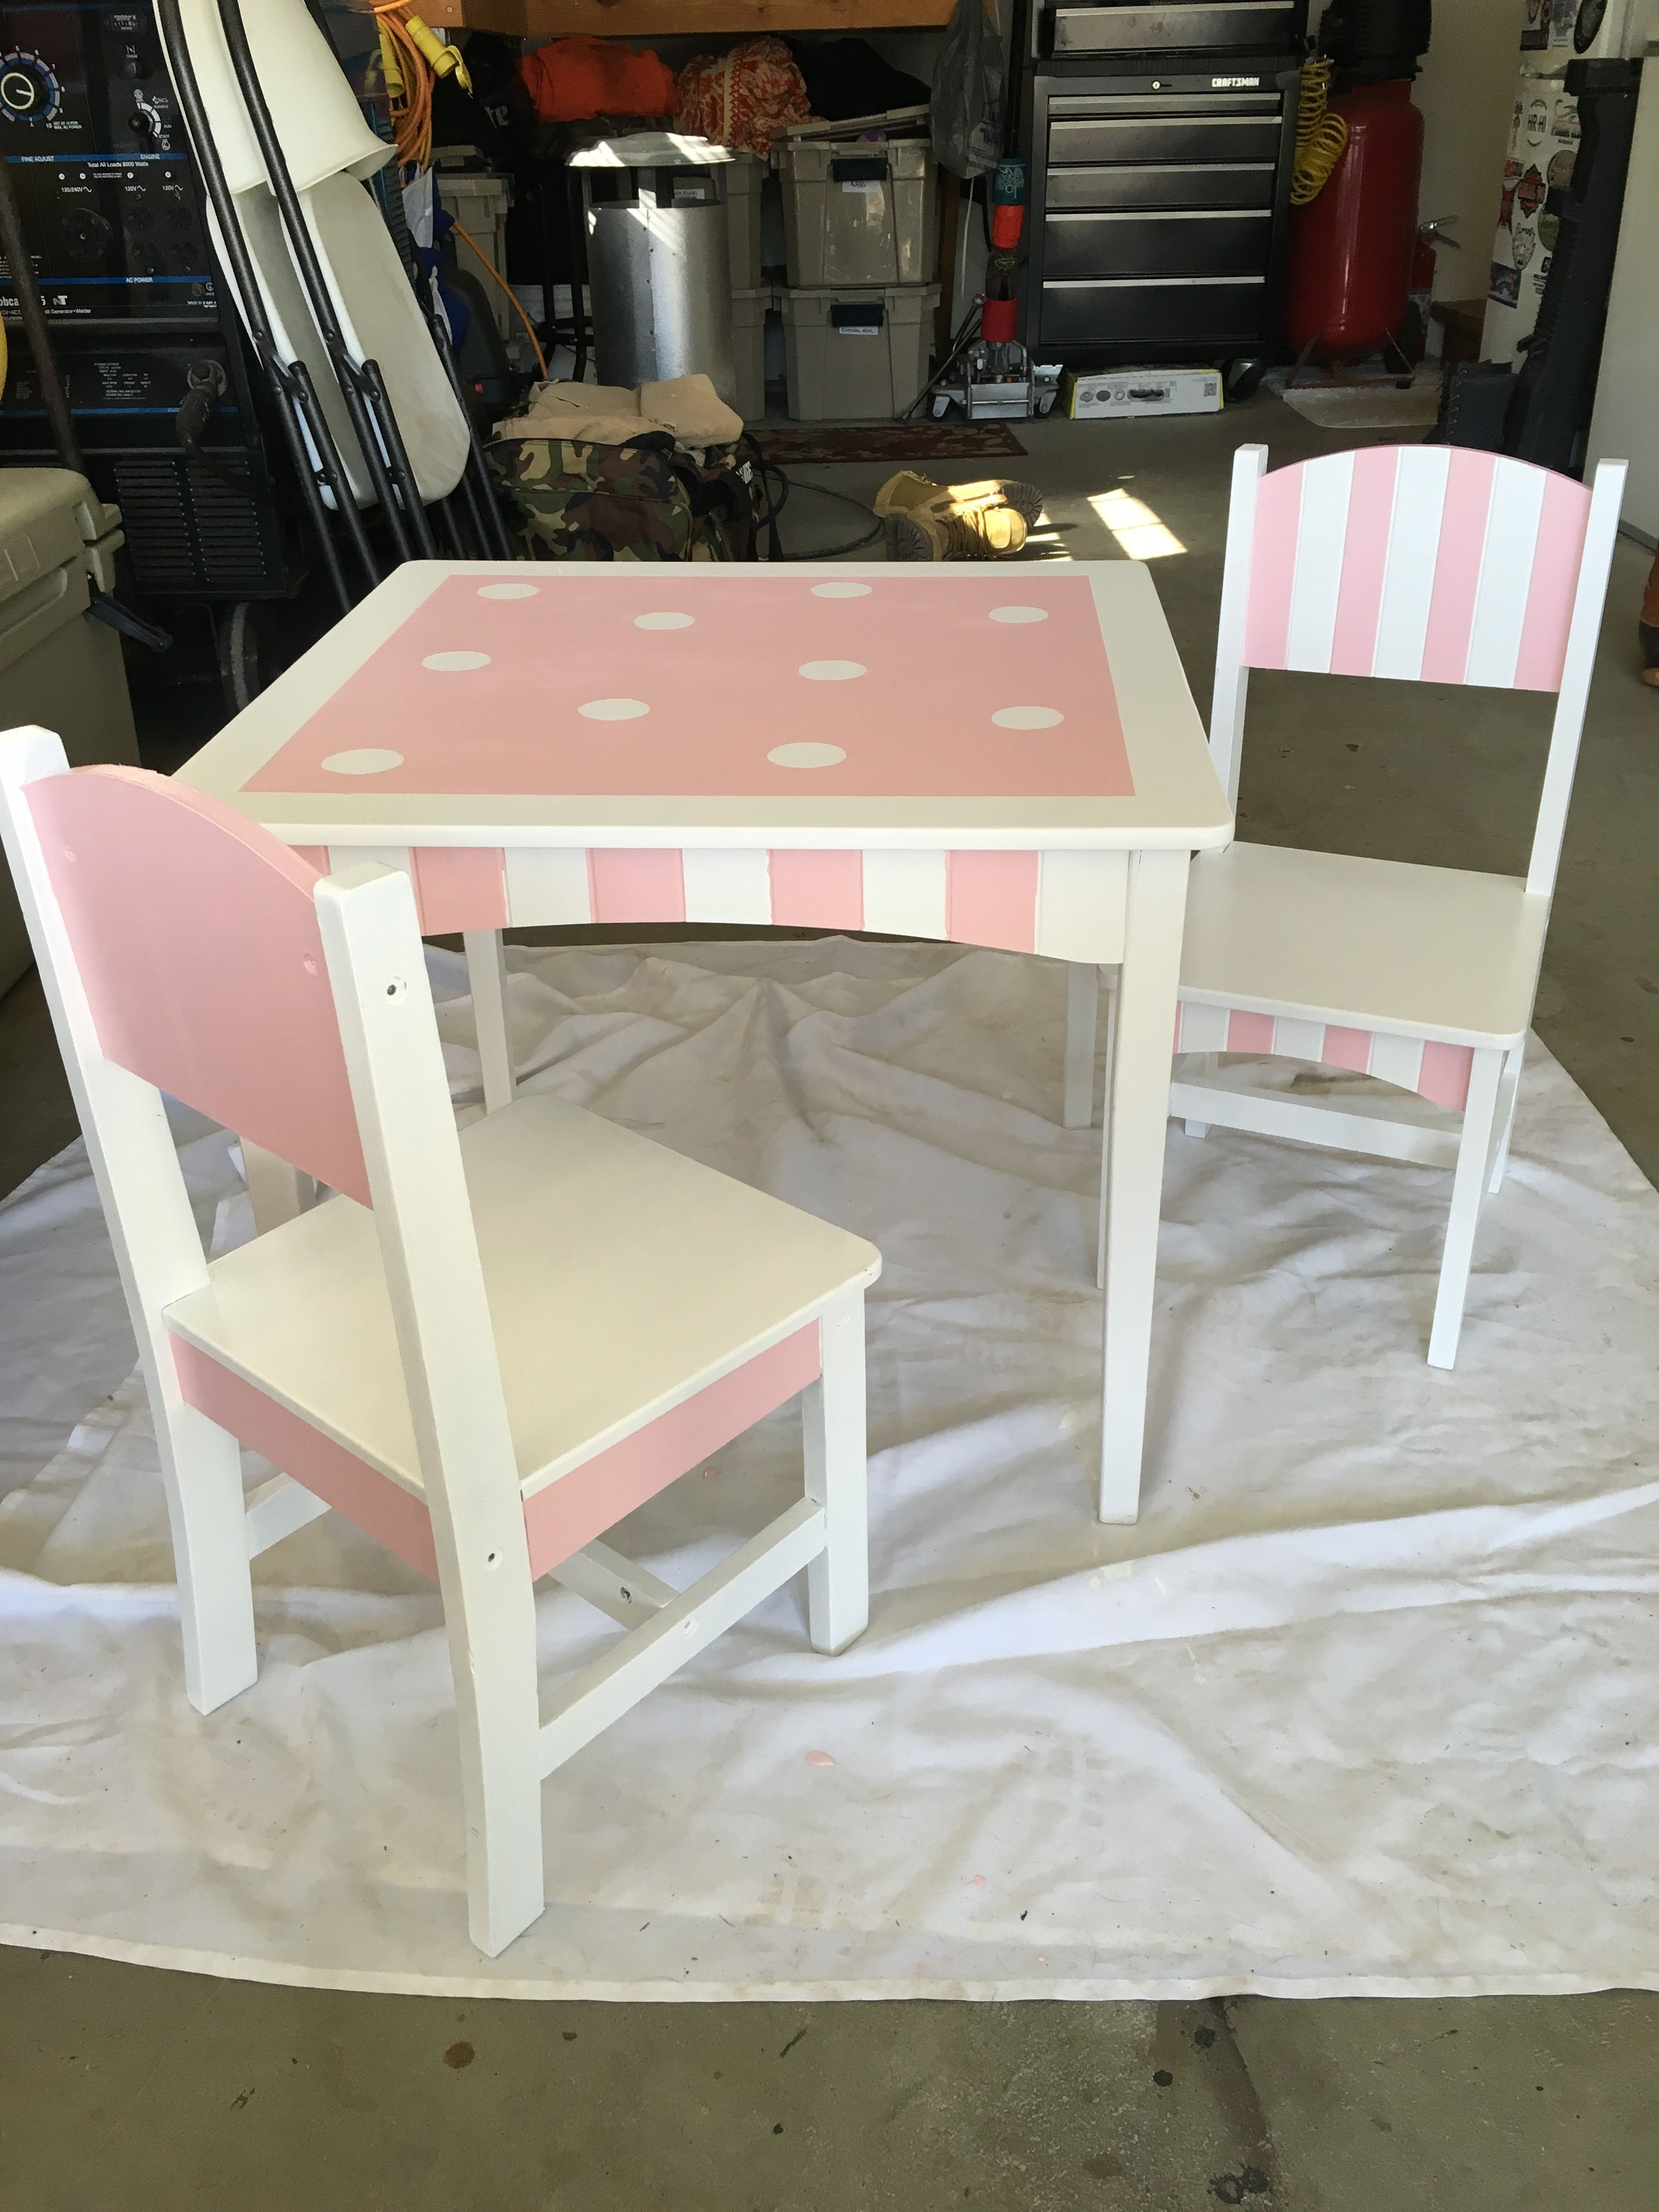 Tremendous Old Toddler Kids Table And Chairs Pink And White Diy Beutiful Home Inspiration Truamahrainfo